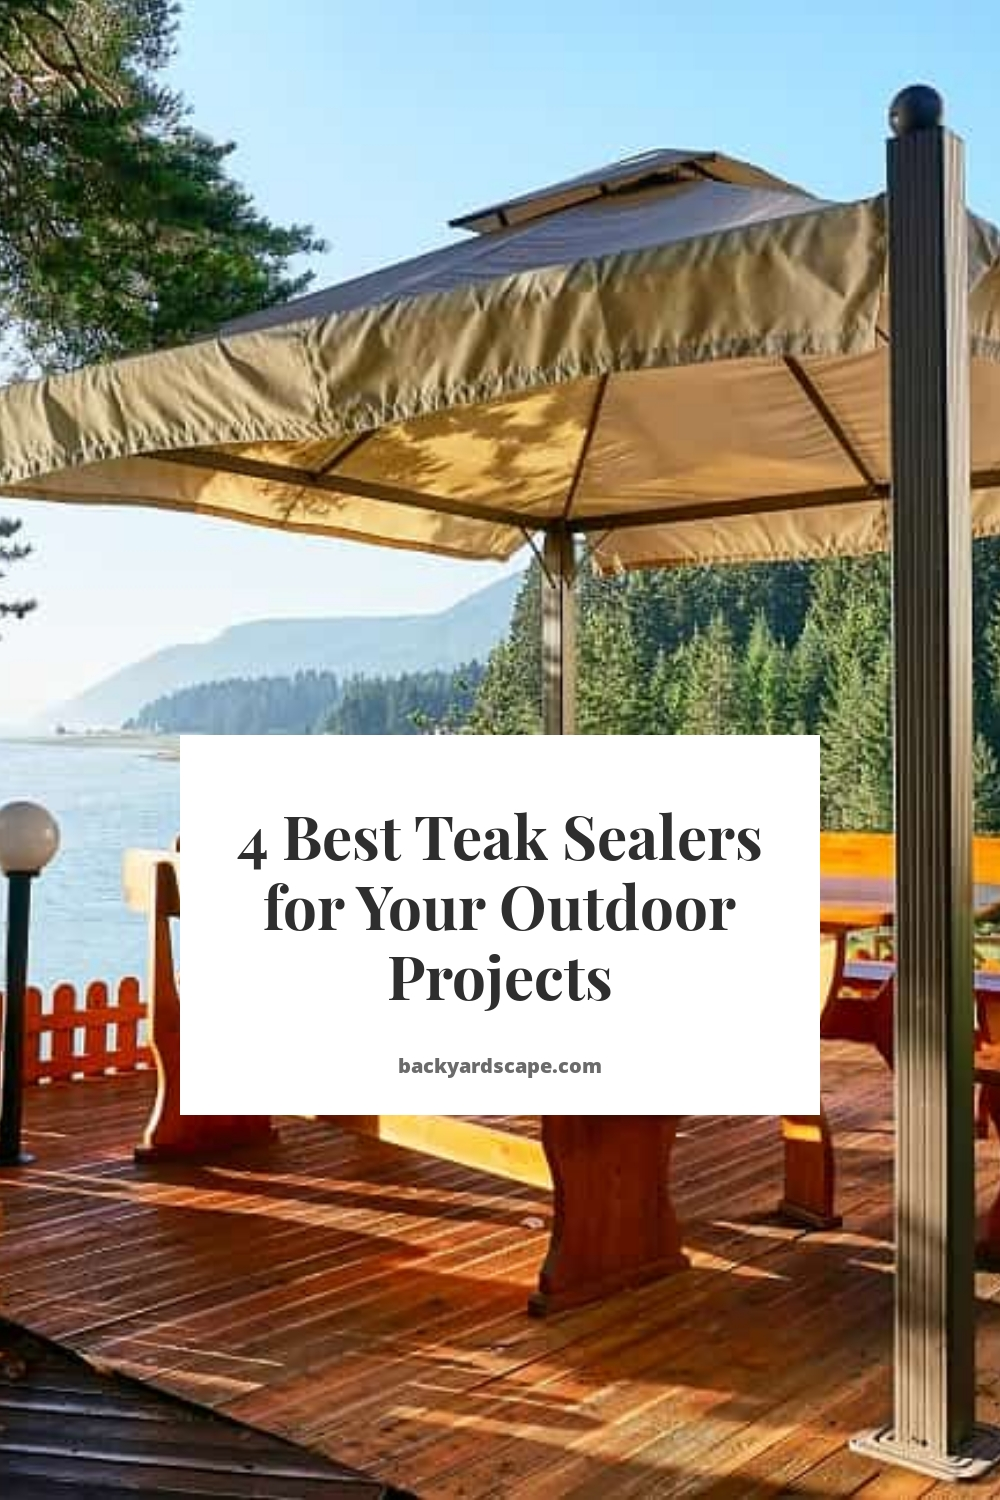 4 Best Teak Sealers for Your Outdoor Projects